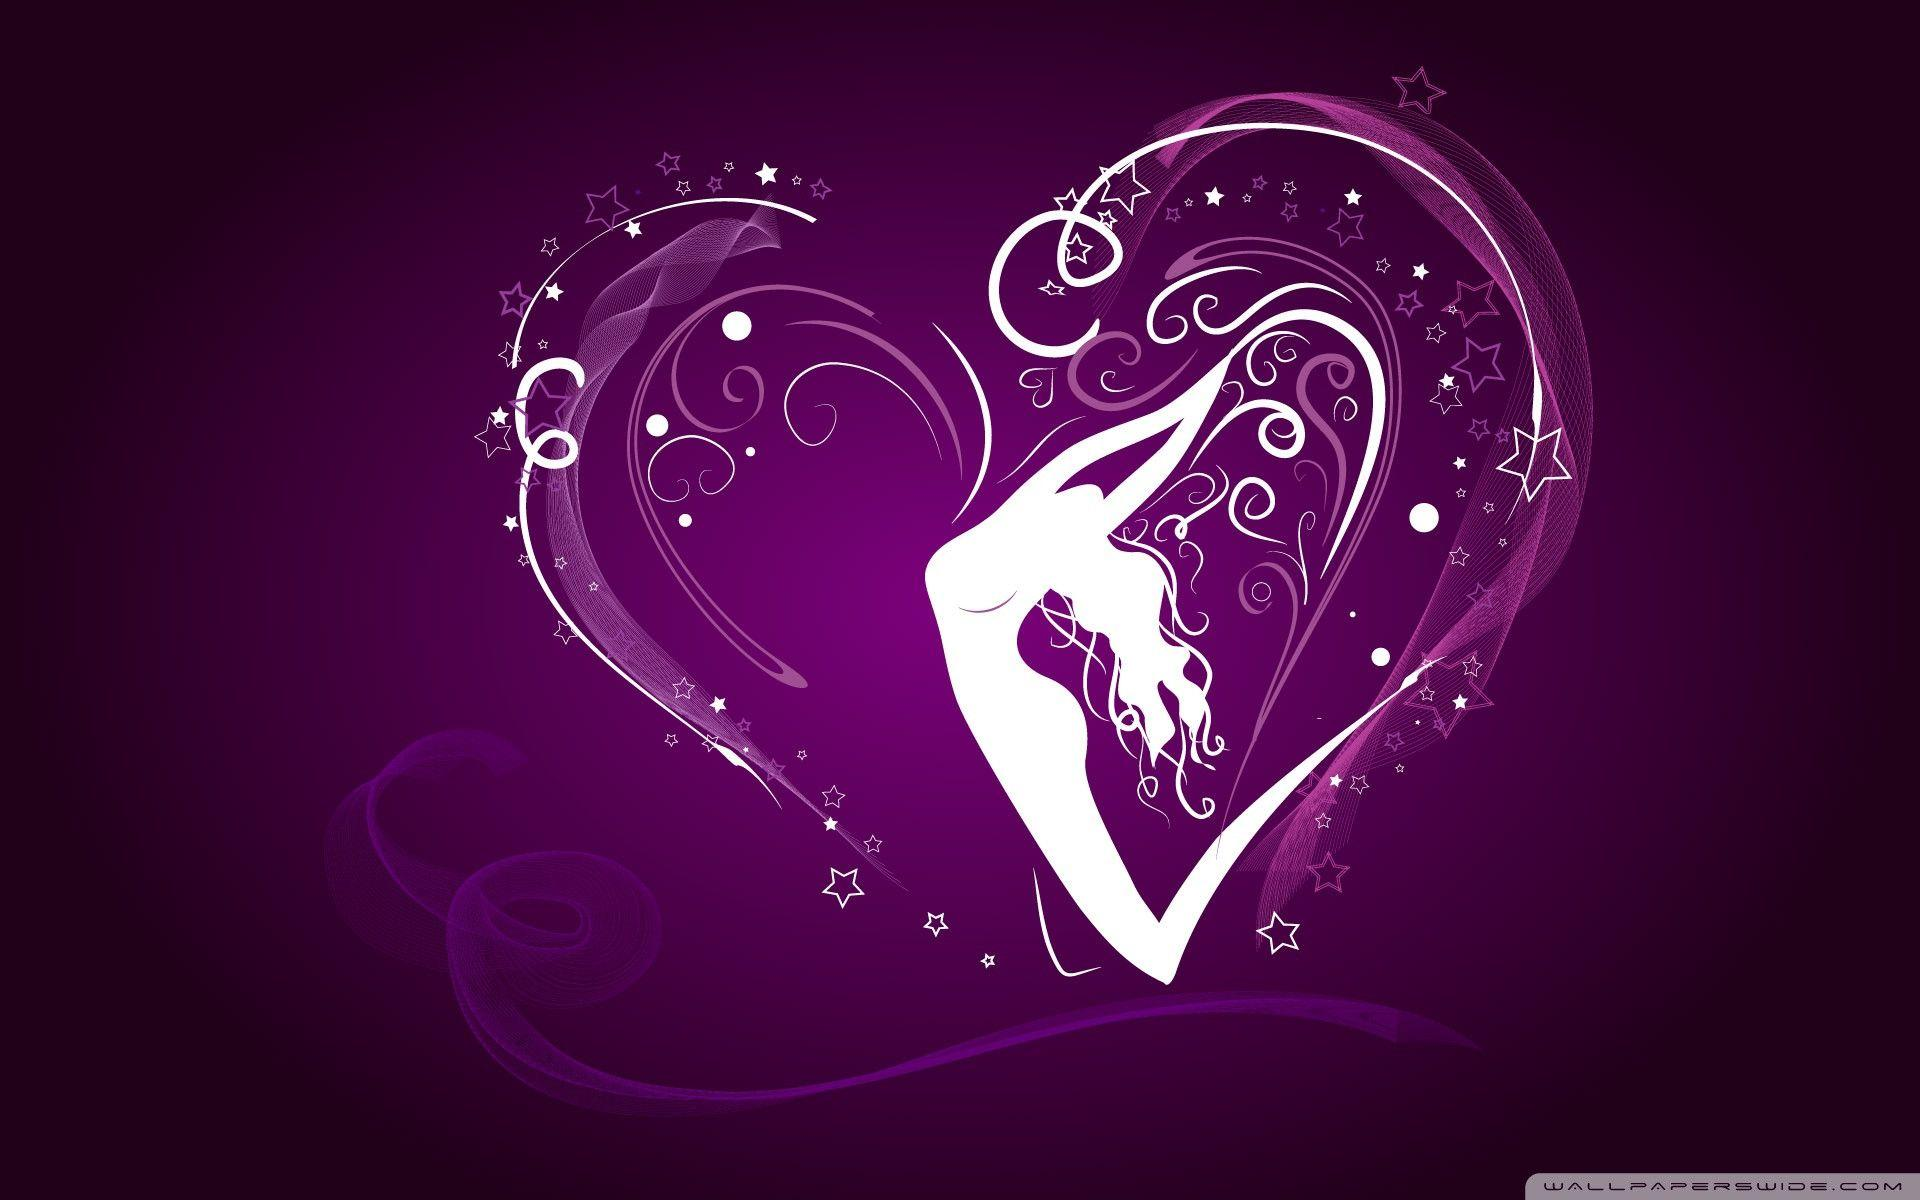 Love Theme Wallpaper In Hd : Love Wallpapers Pictures - Wallpaper cave